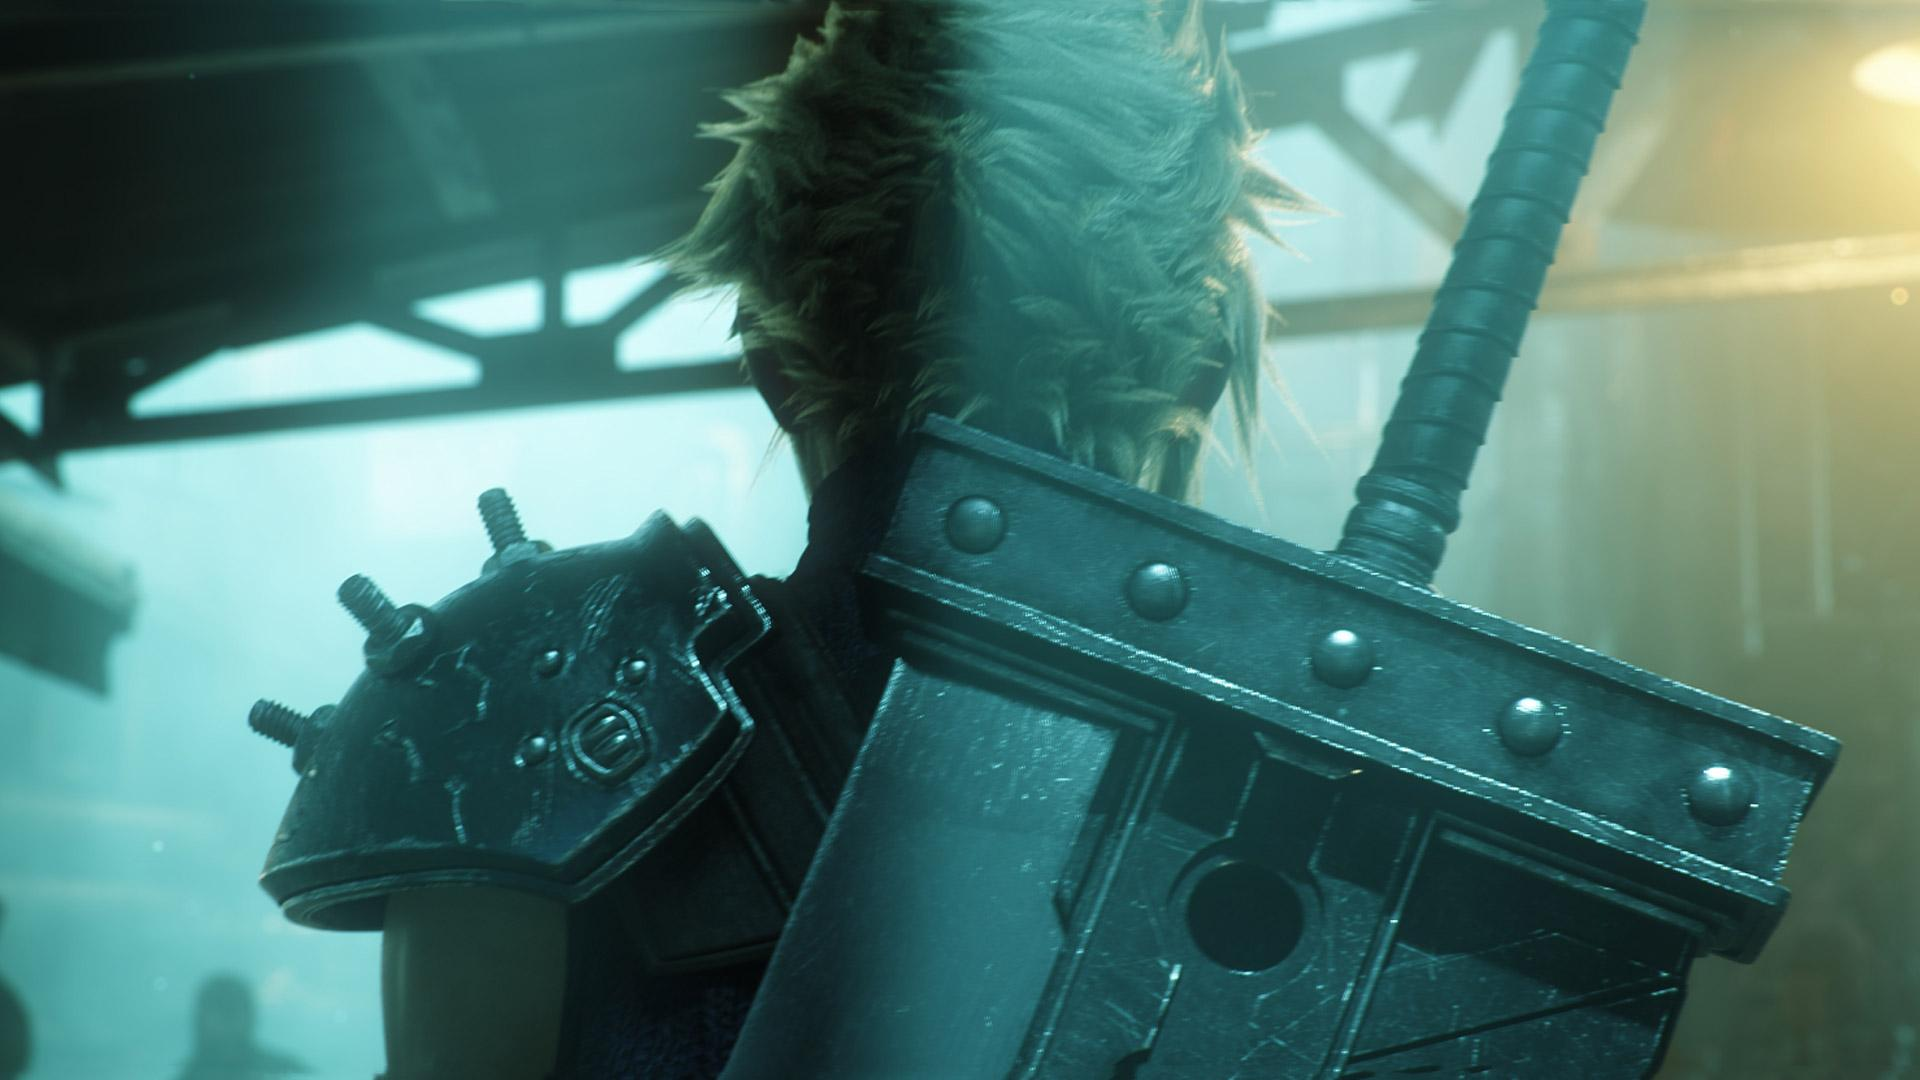 Final Fantasy Vii Remake Wallpapers Wallpaper Cave